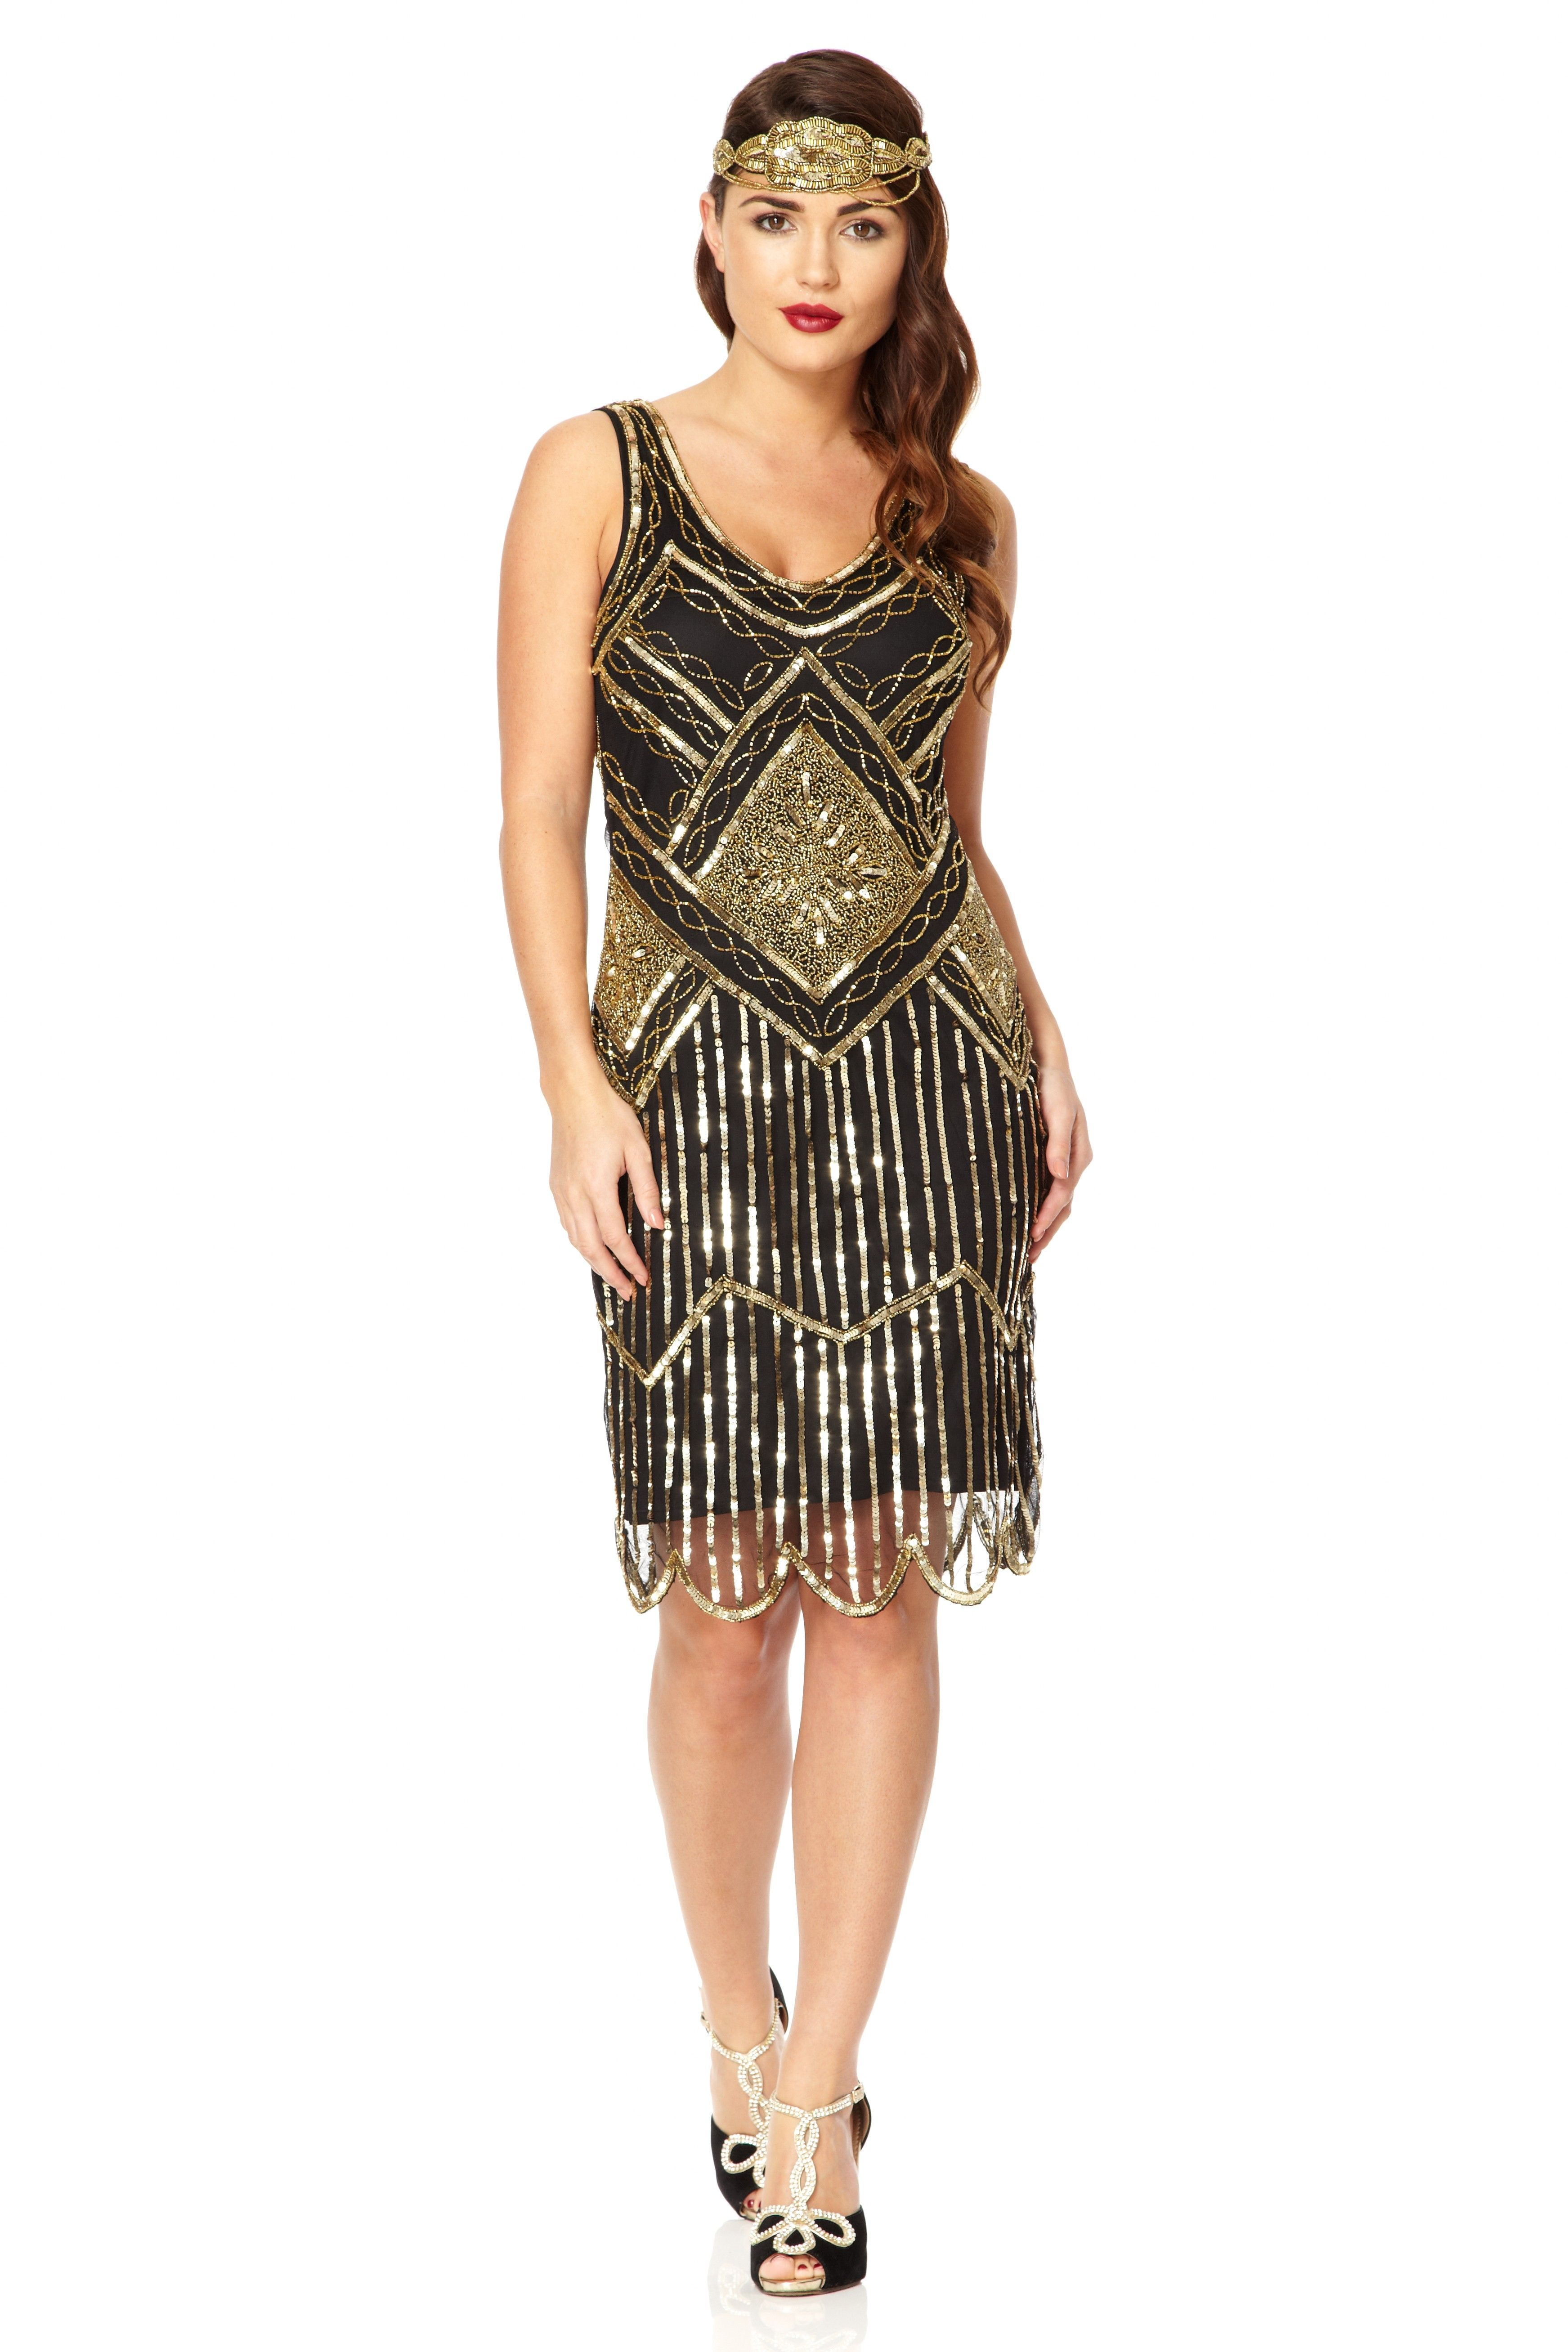 Edith Great Gatsby inspired 1920s Black Gold Flapper Dress ...